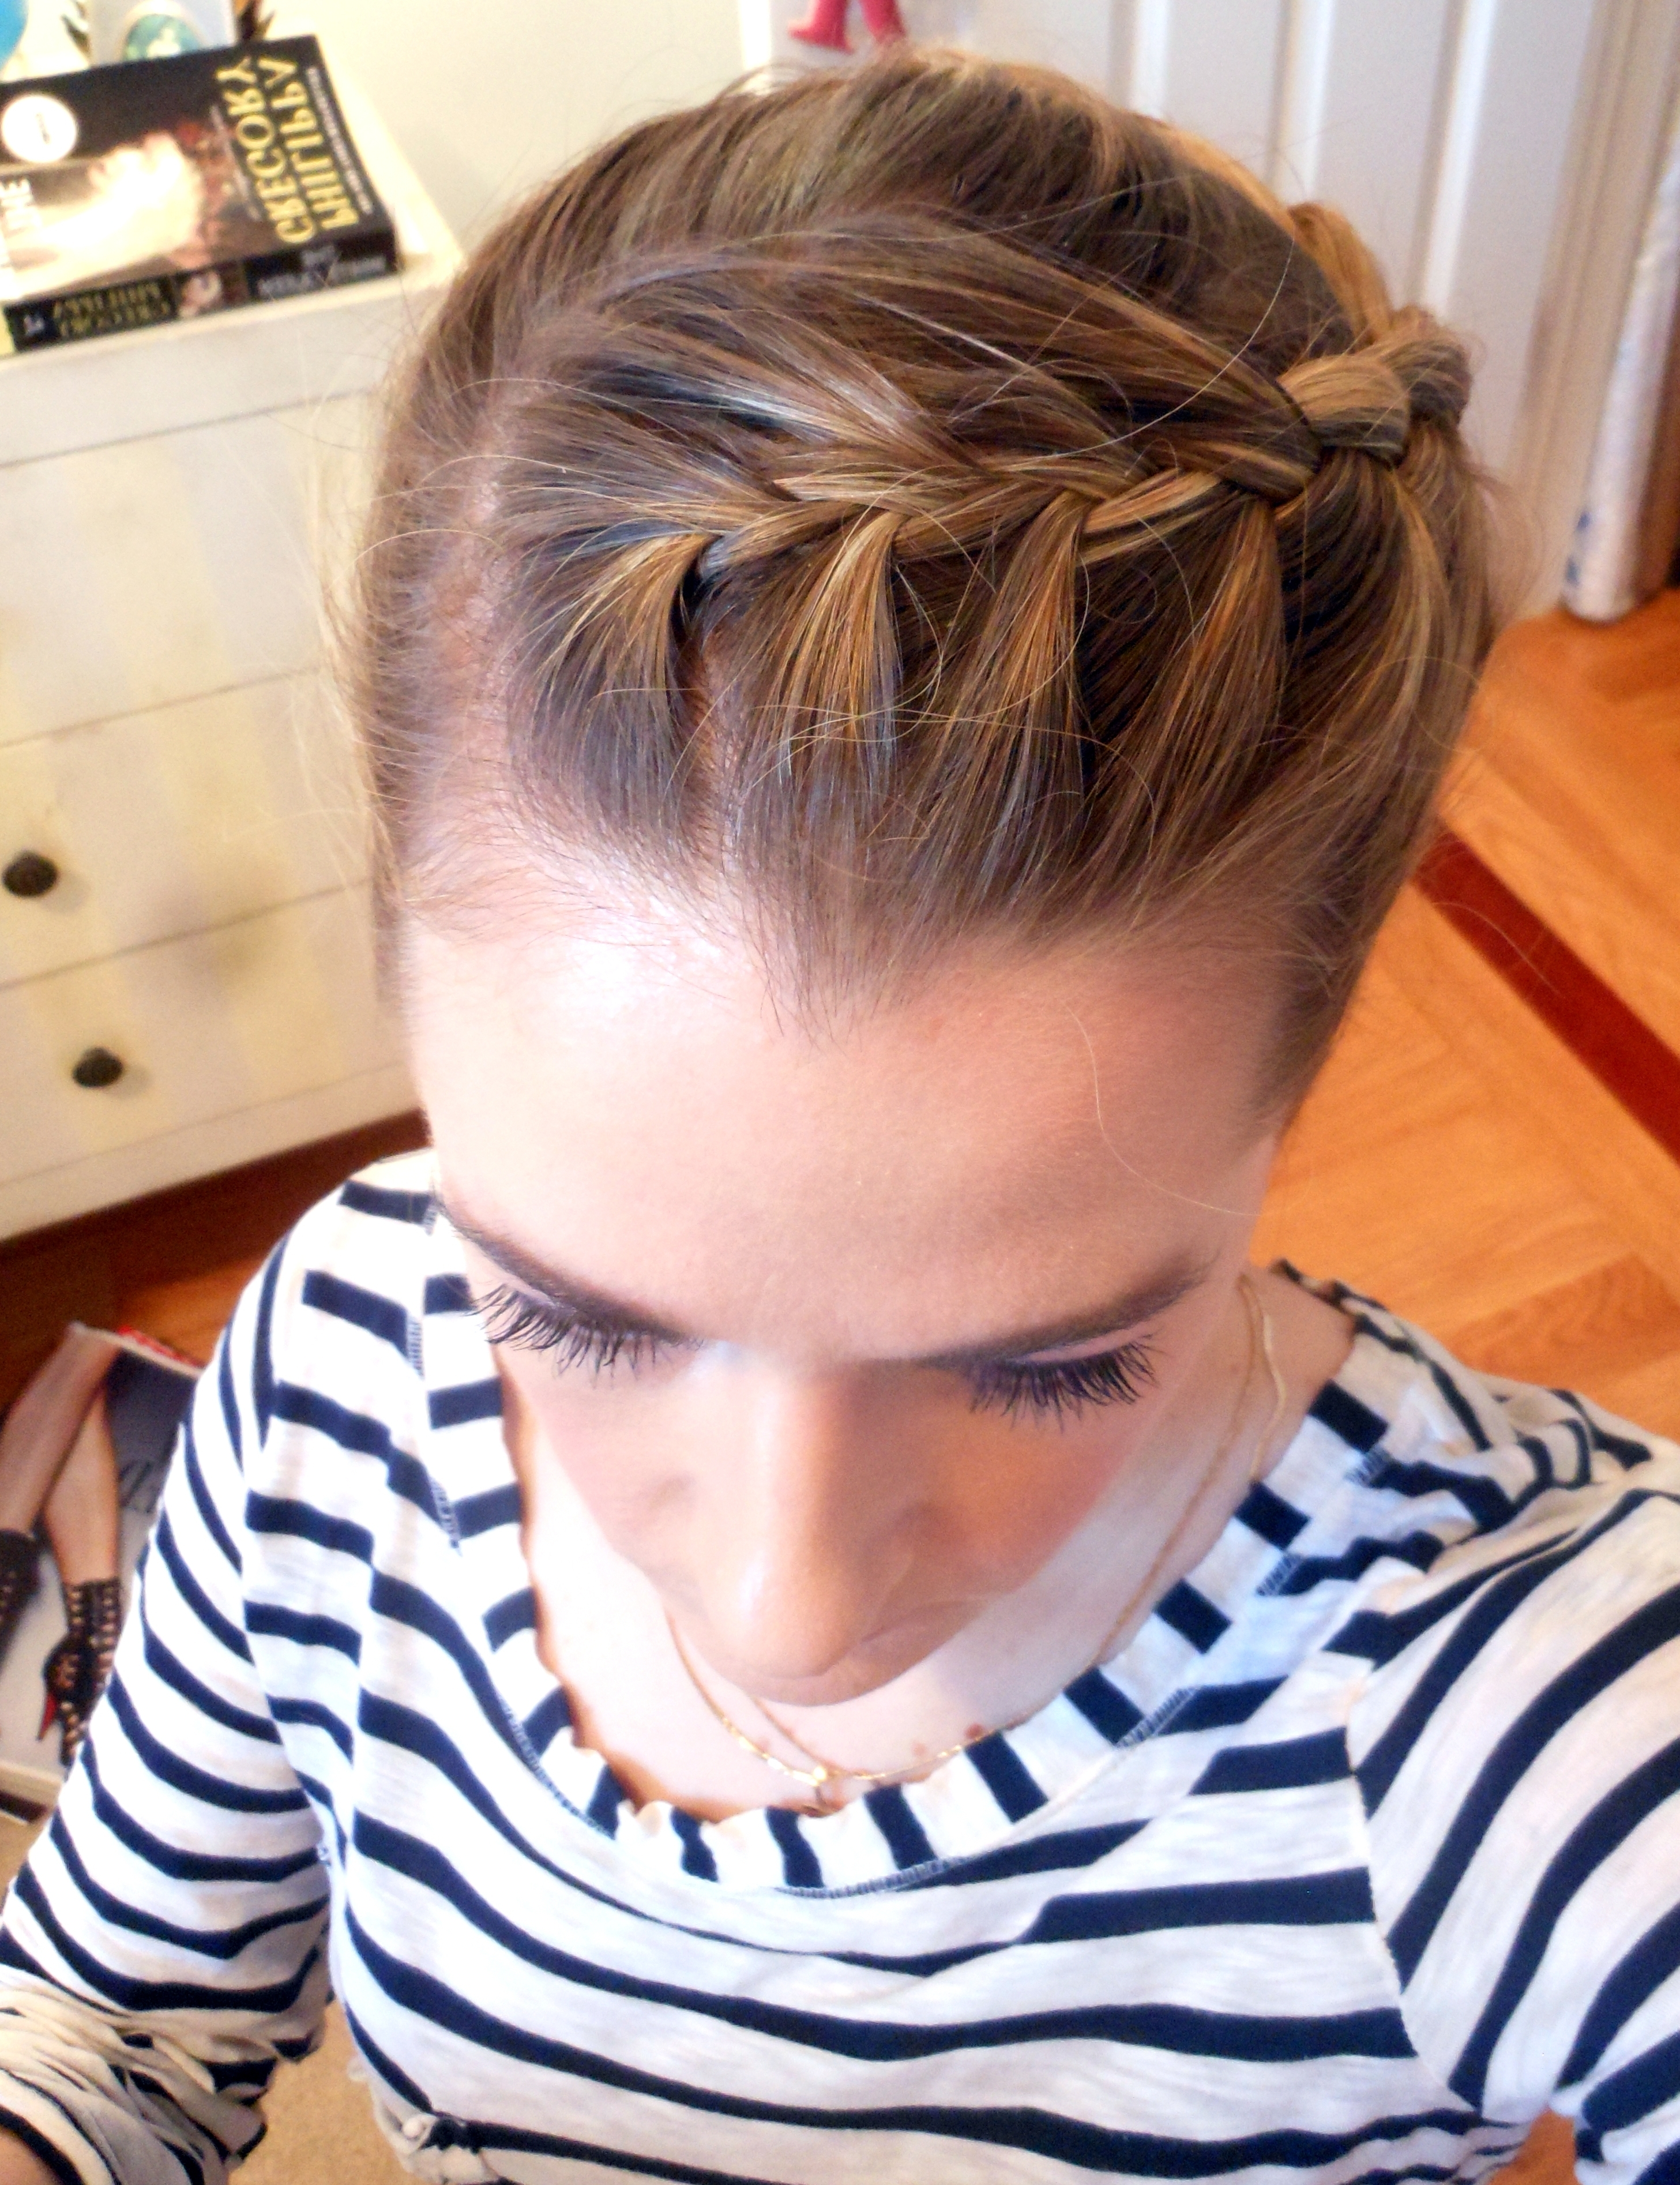 Most Recently Released Braided Crown Pony Hairstyles Regarding Hairstyle From Three Angles: Crown Braid Ponytail (View 15 of 20)